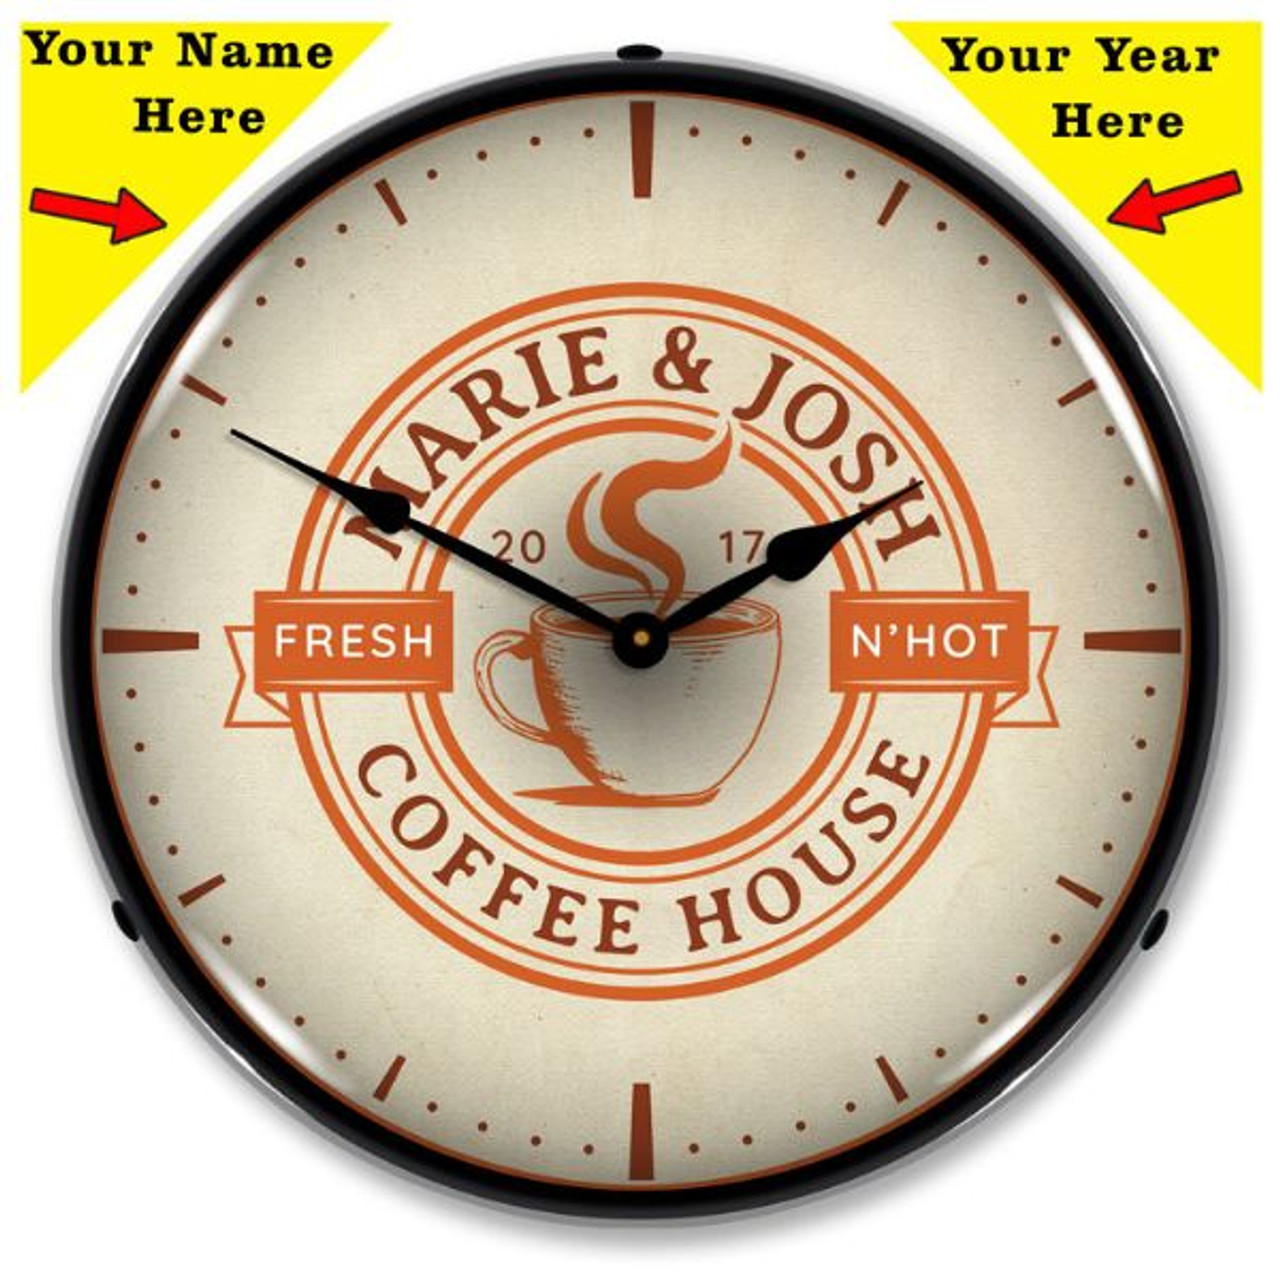 Personalized Coffee House LED Lighted Wall Clock 14 x 14 Inches